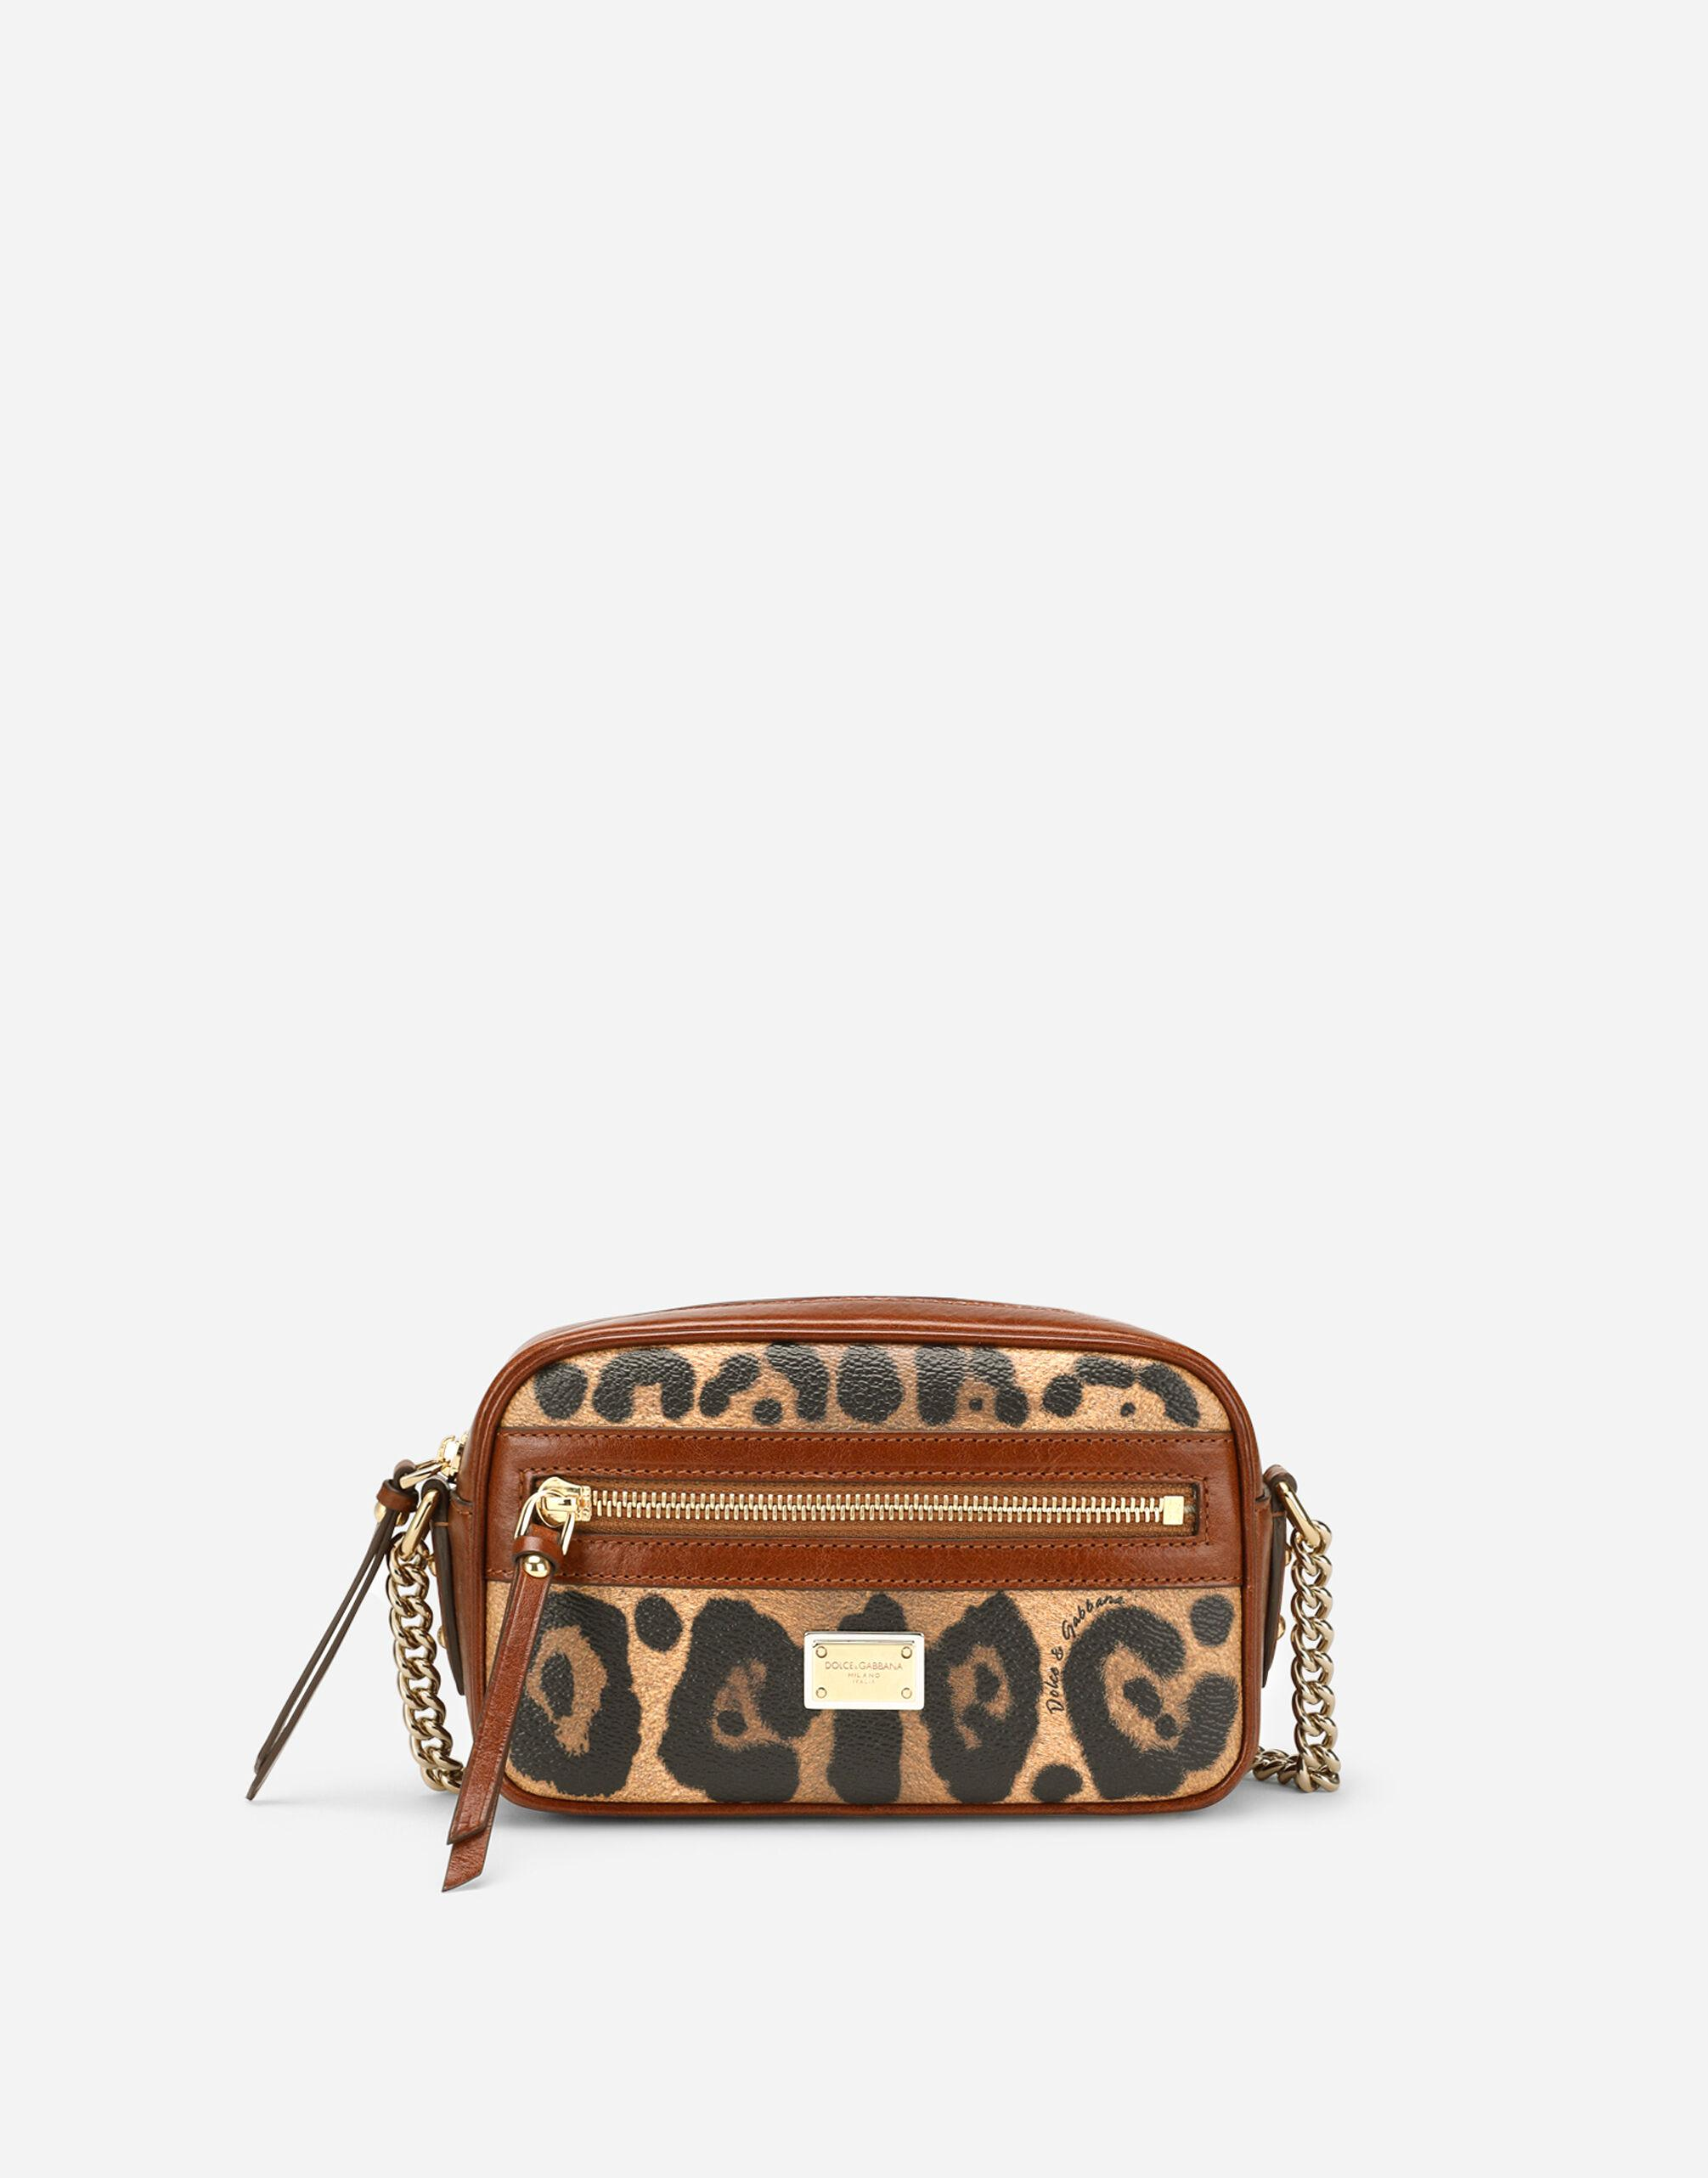 Small crossbody bag in leopard-print Crespo with branded plate